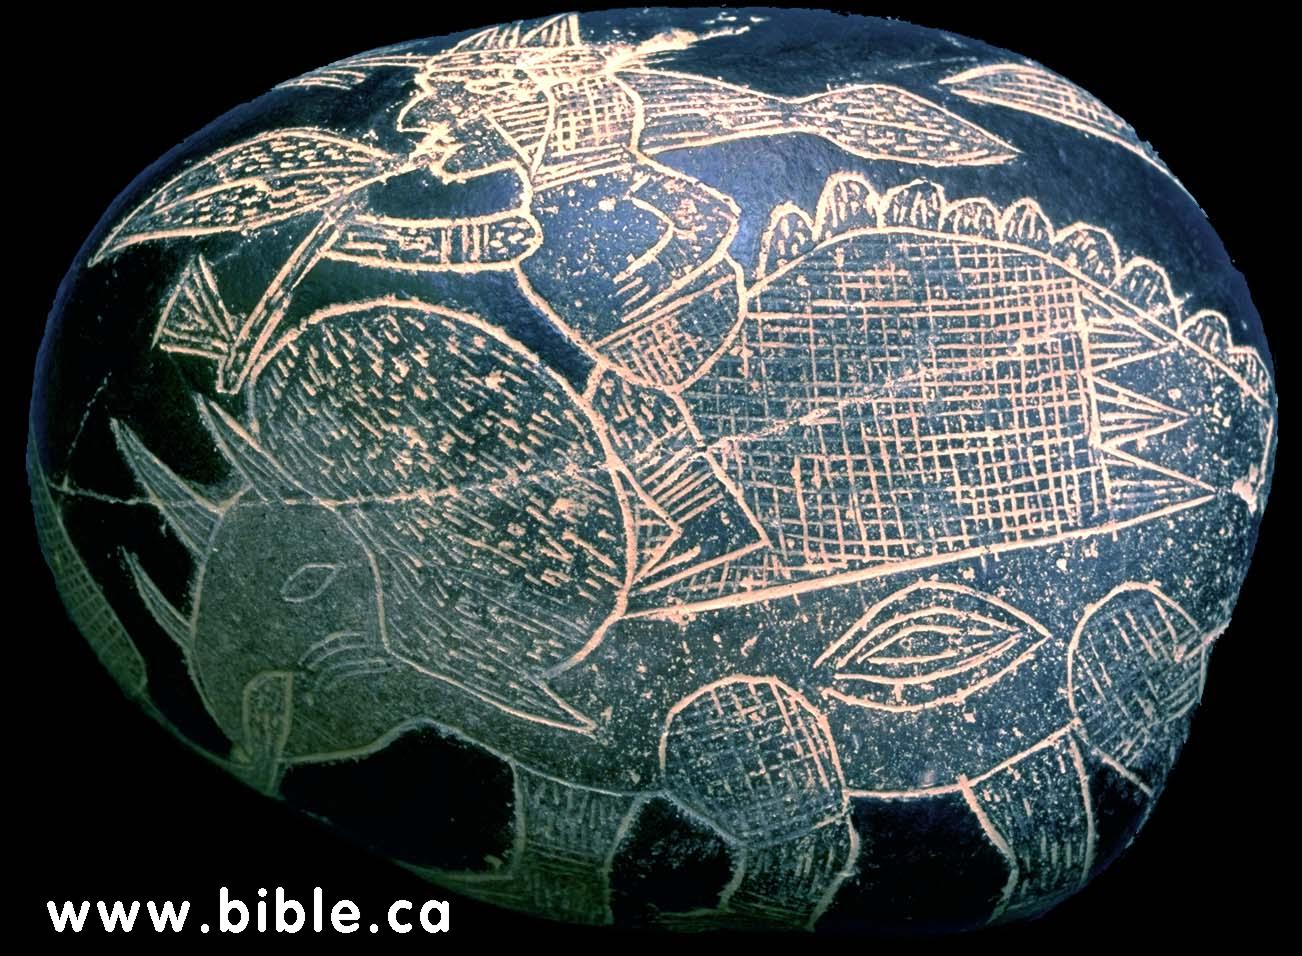 http://www.bible.ca/tracks/peru-tomb-rock-art-man-riding-triceratops.jpg